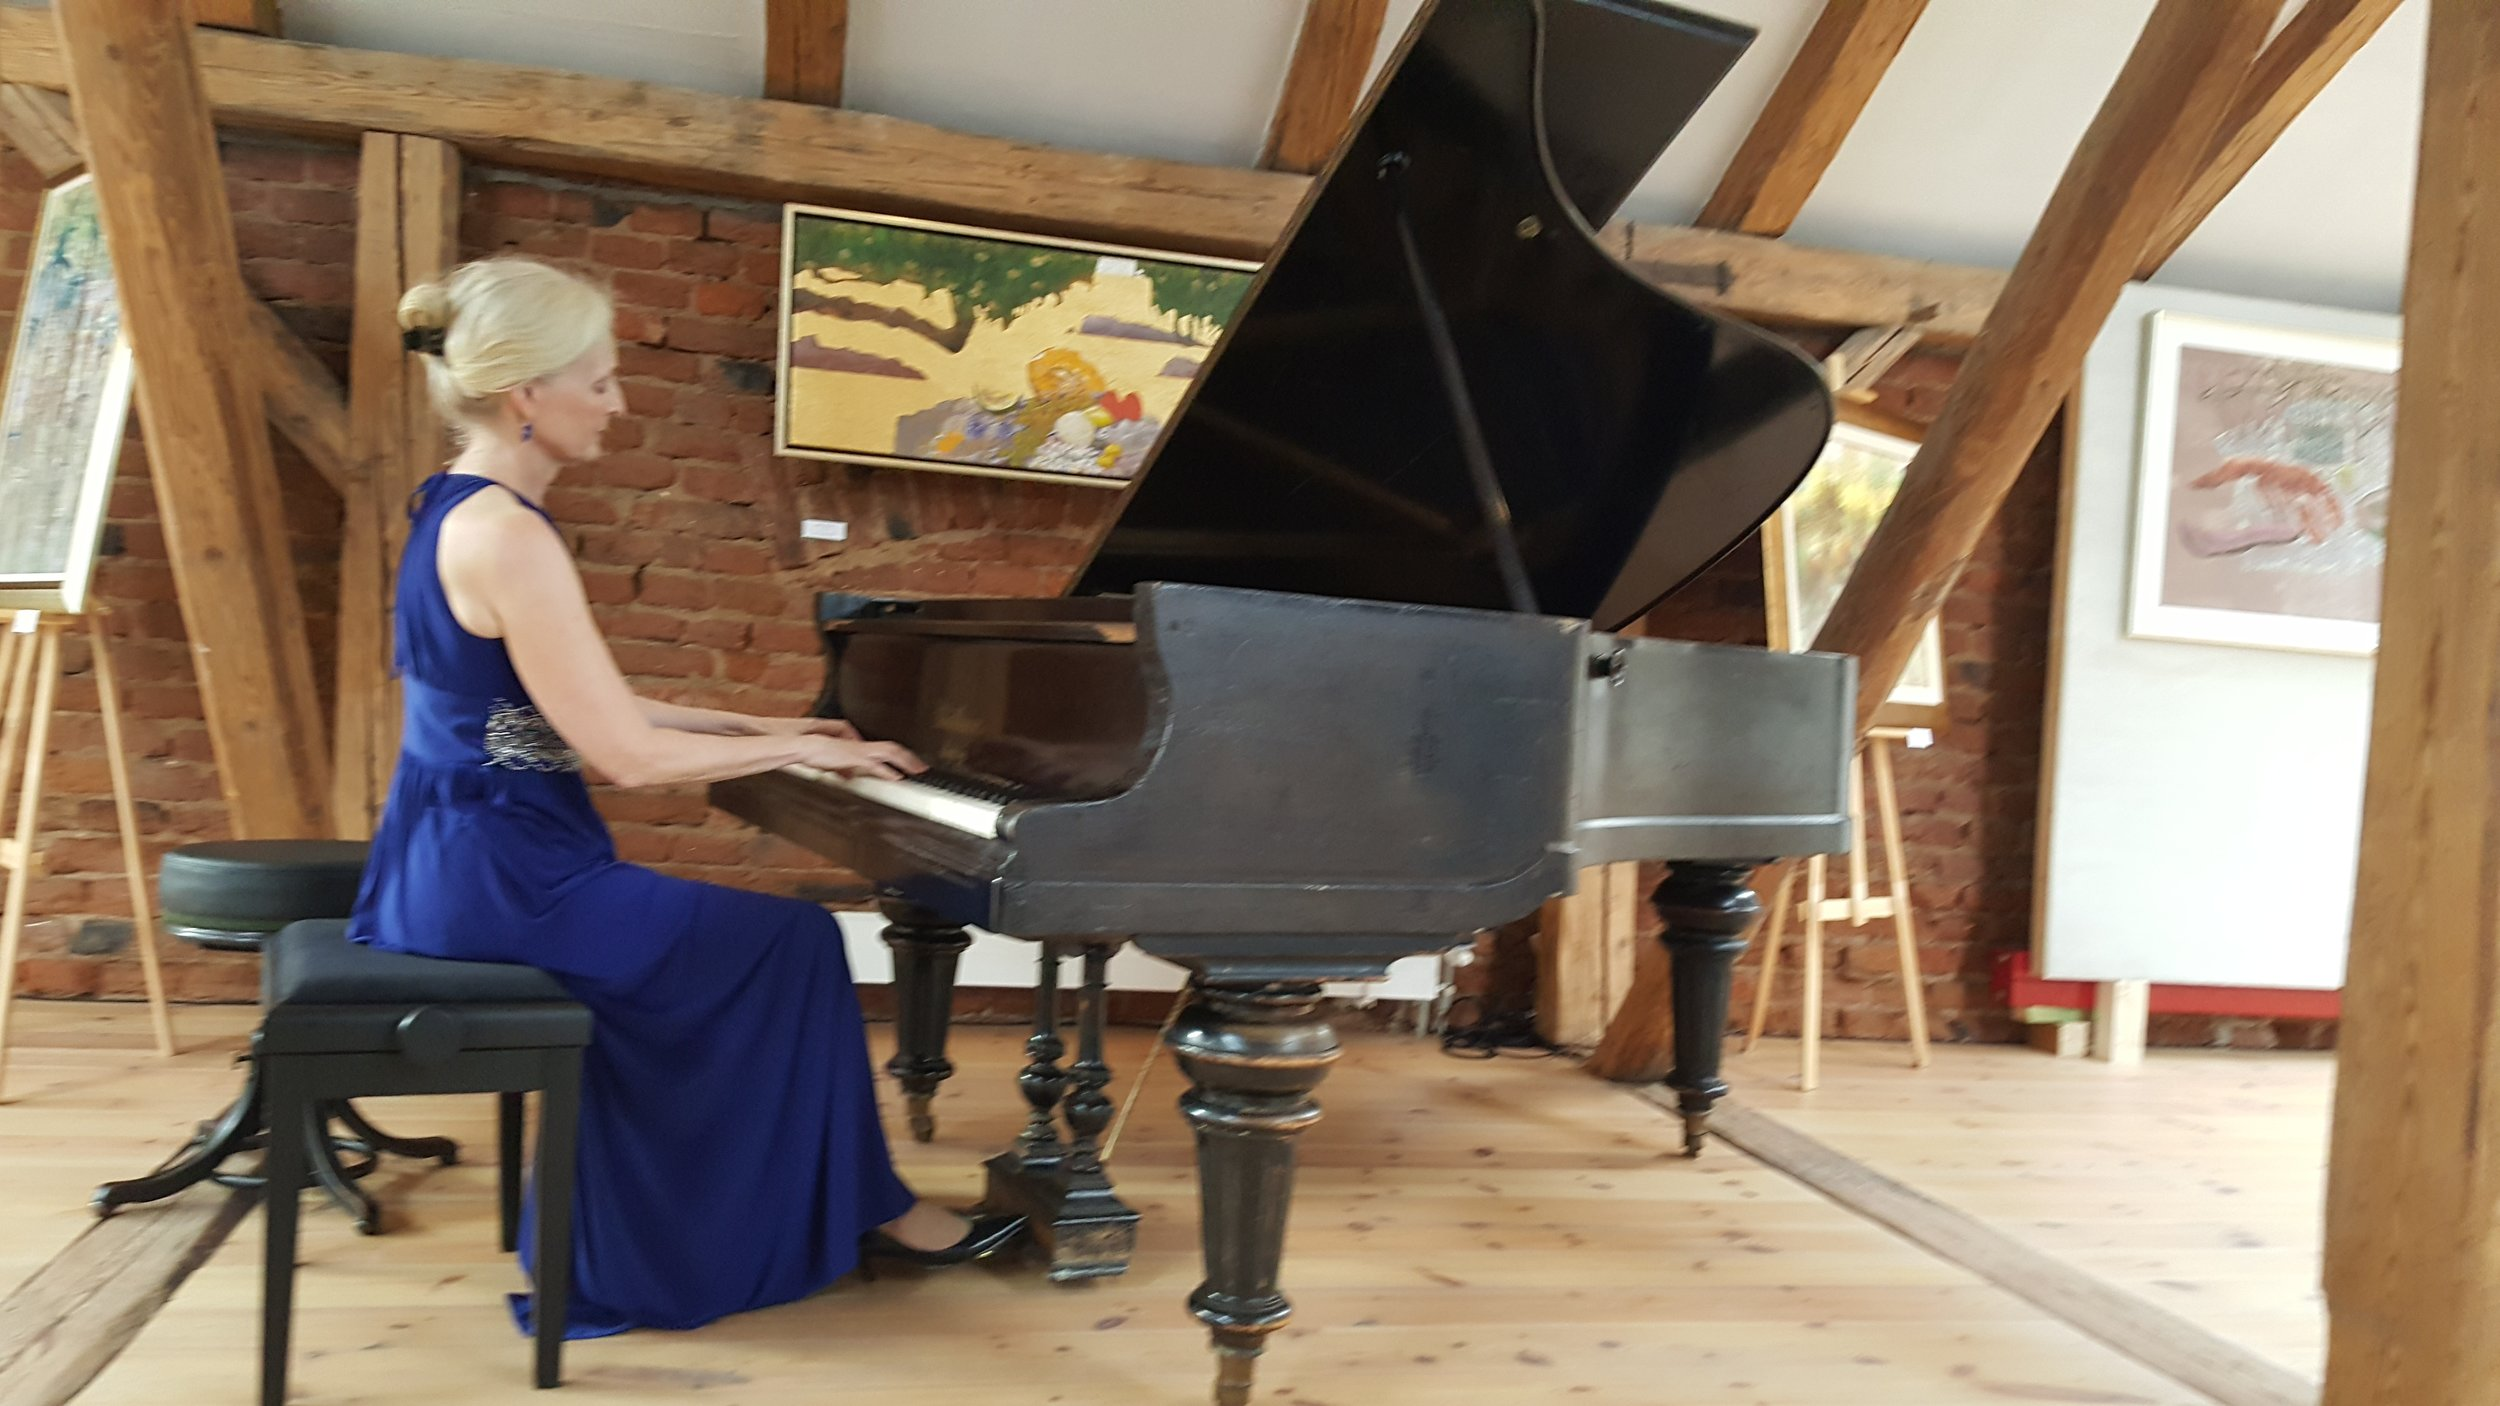 Playing concert in Paczkow, August 20, 2016